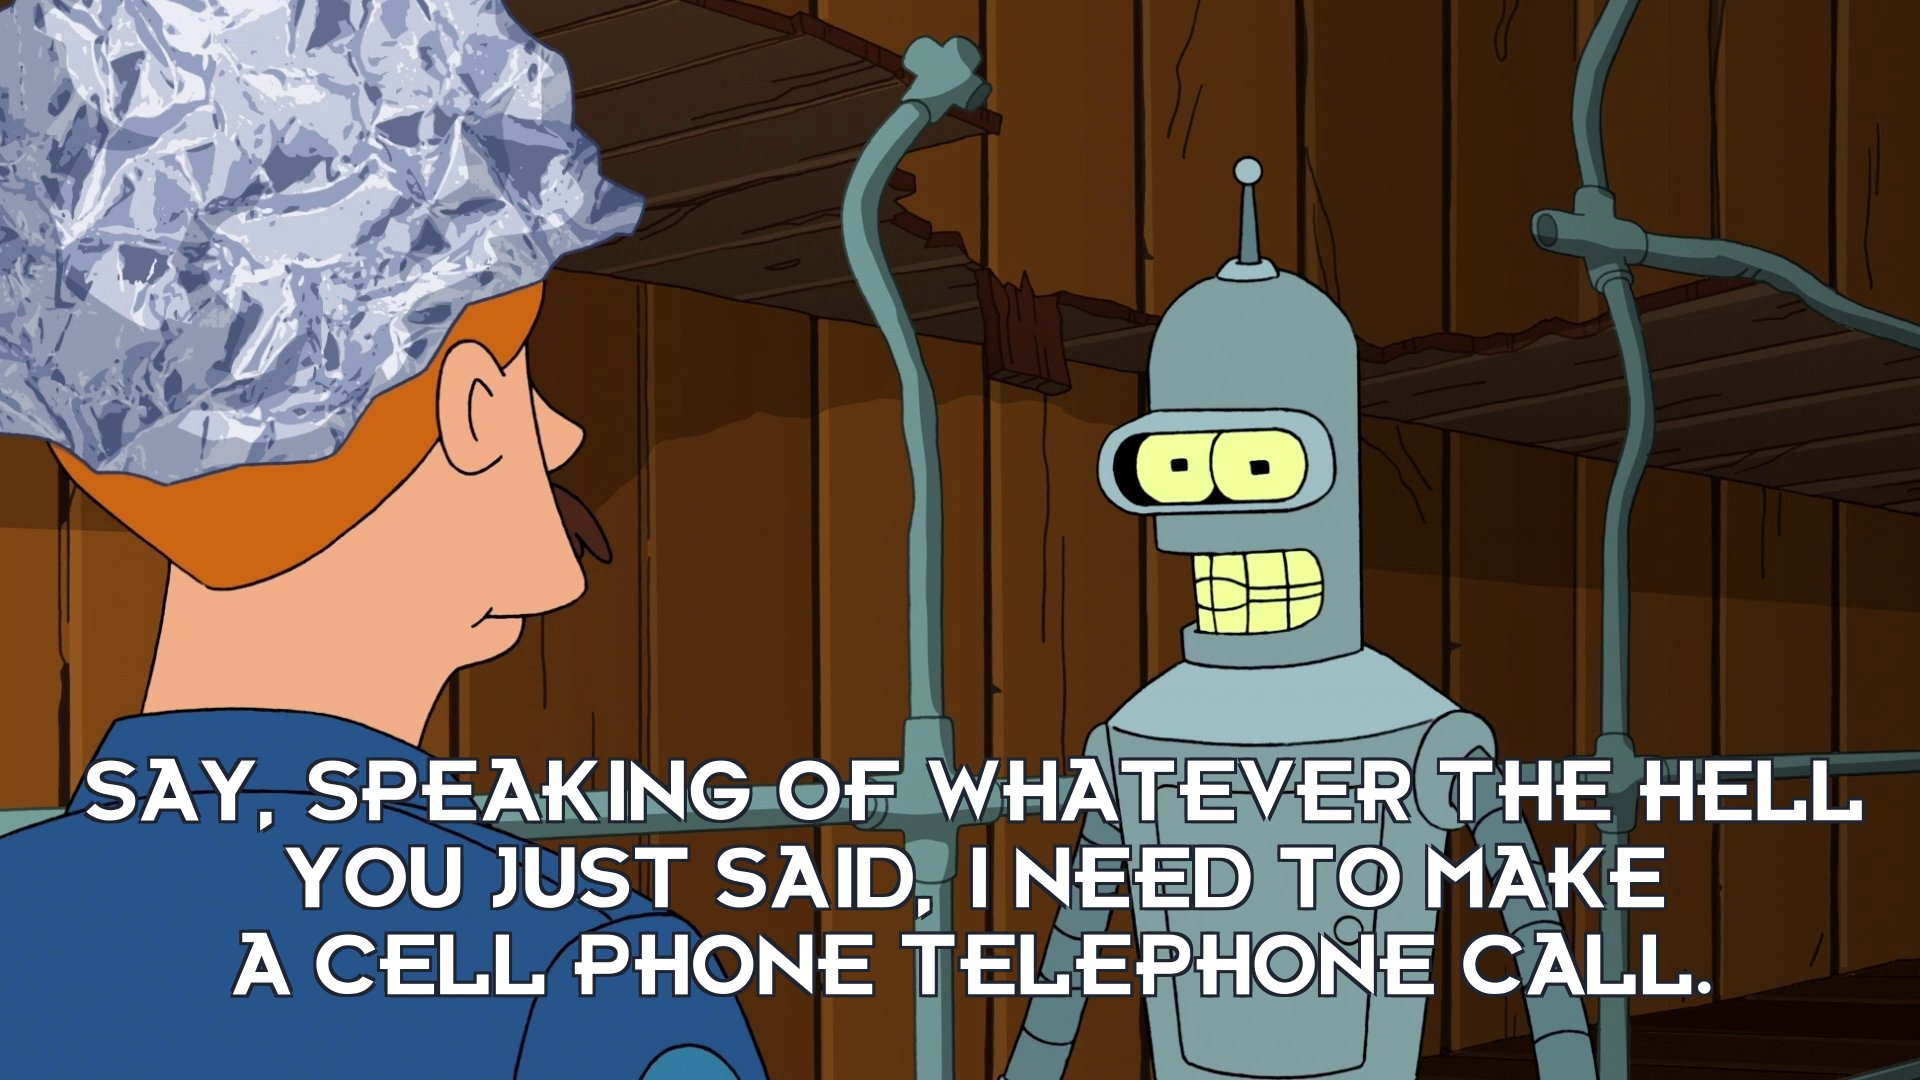 Bender Bending Rodriguez: Say, speaking of whatever the hell you just said, I need to make a cell phone telephone call.